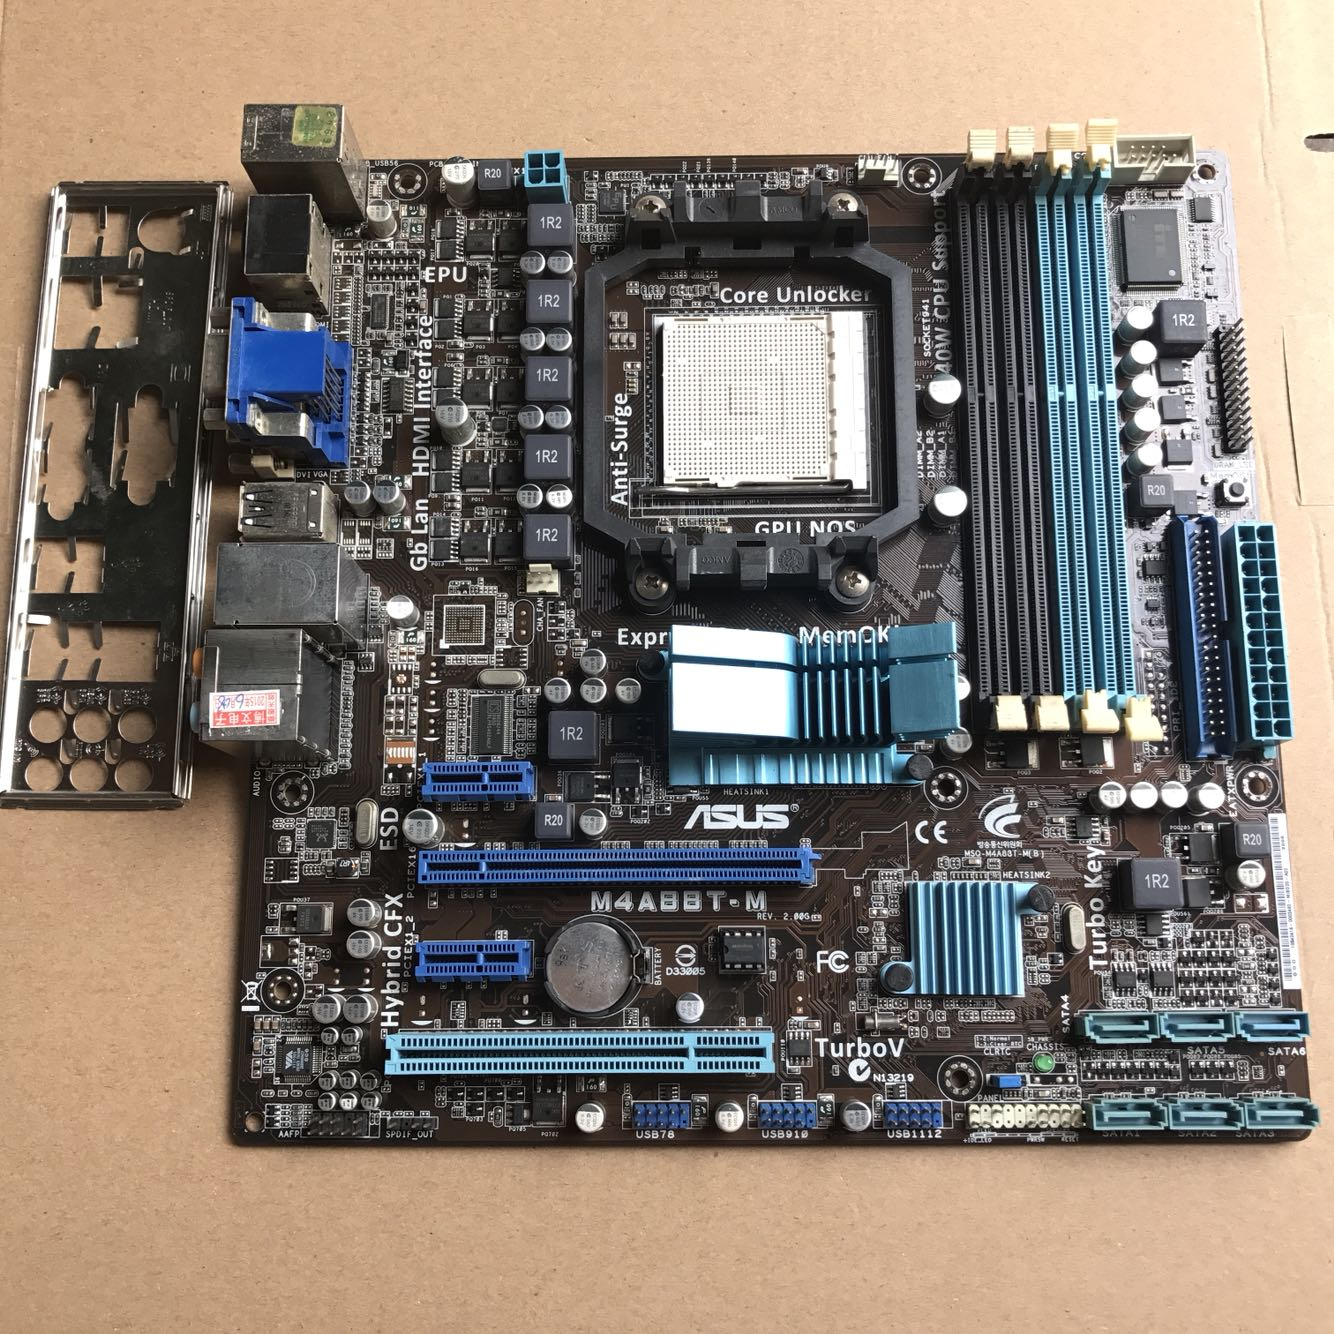 Used,for Asus M4A88T-M Original Used Desktop Motherboard 880G Socket AM3 DDR3 SATA II original used desktop motherboard for asus p5ql pro p43 support lga7756 ddr2 support 16g 6 sata ii usb2 0 atx